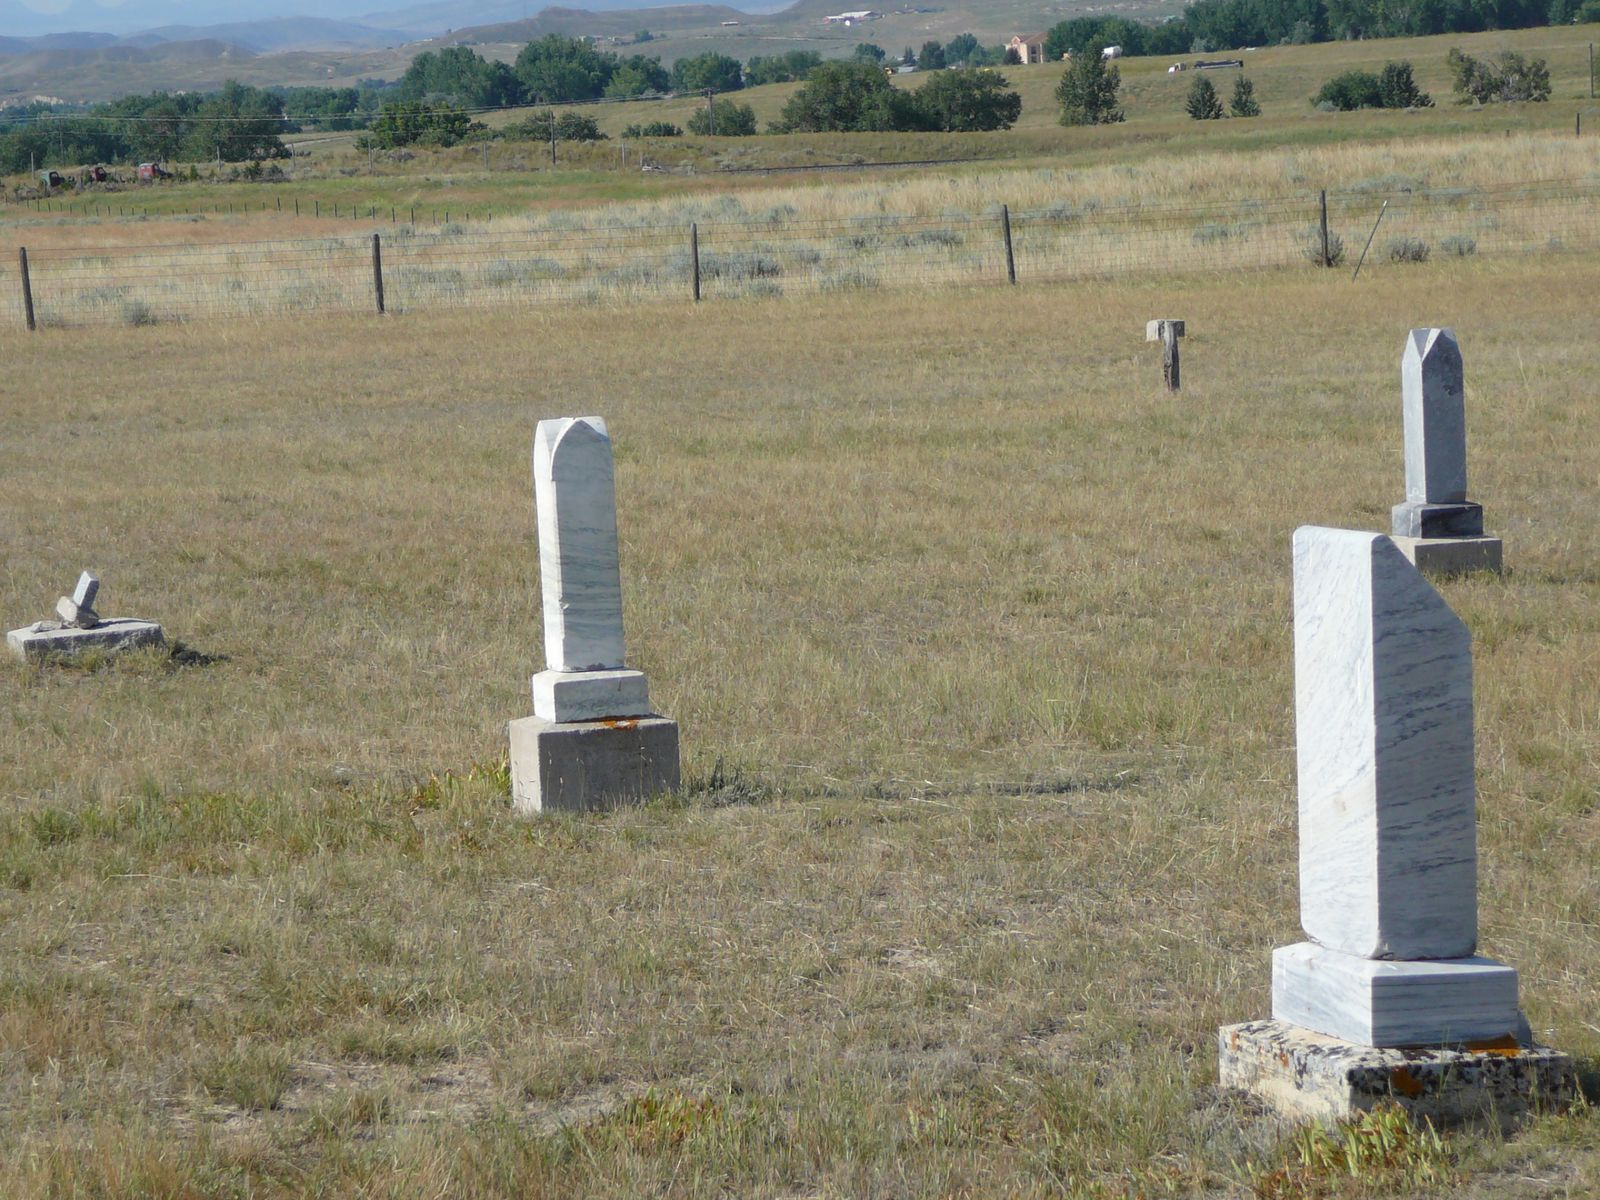 converse county Search converse county real estate property listings to find homes for sale in converse county, wy browse houses for sale in converse county today.